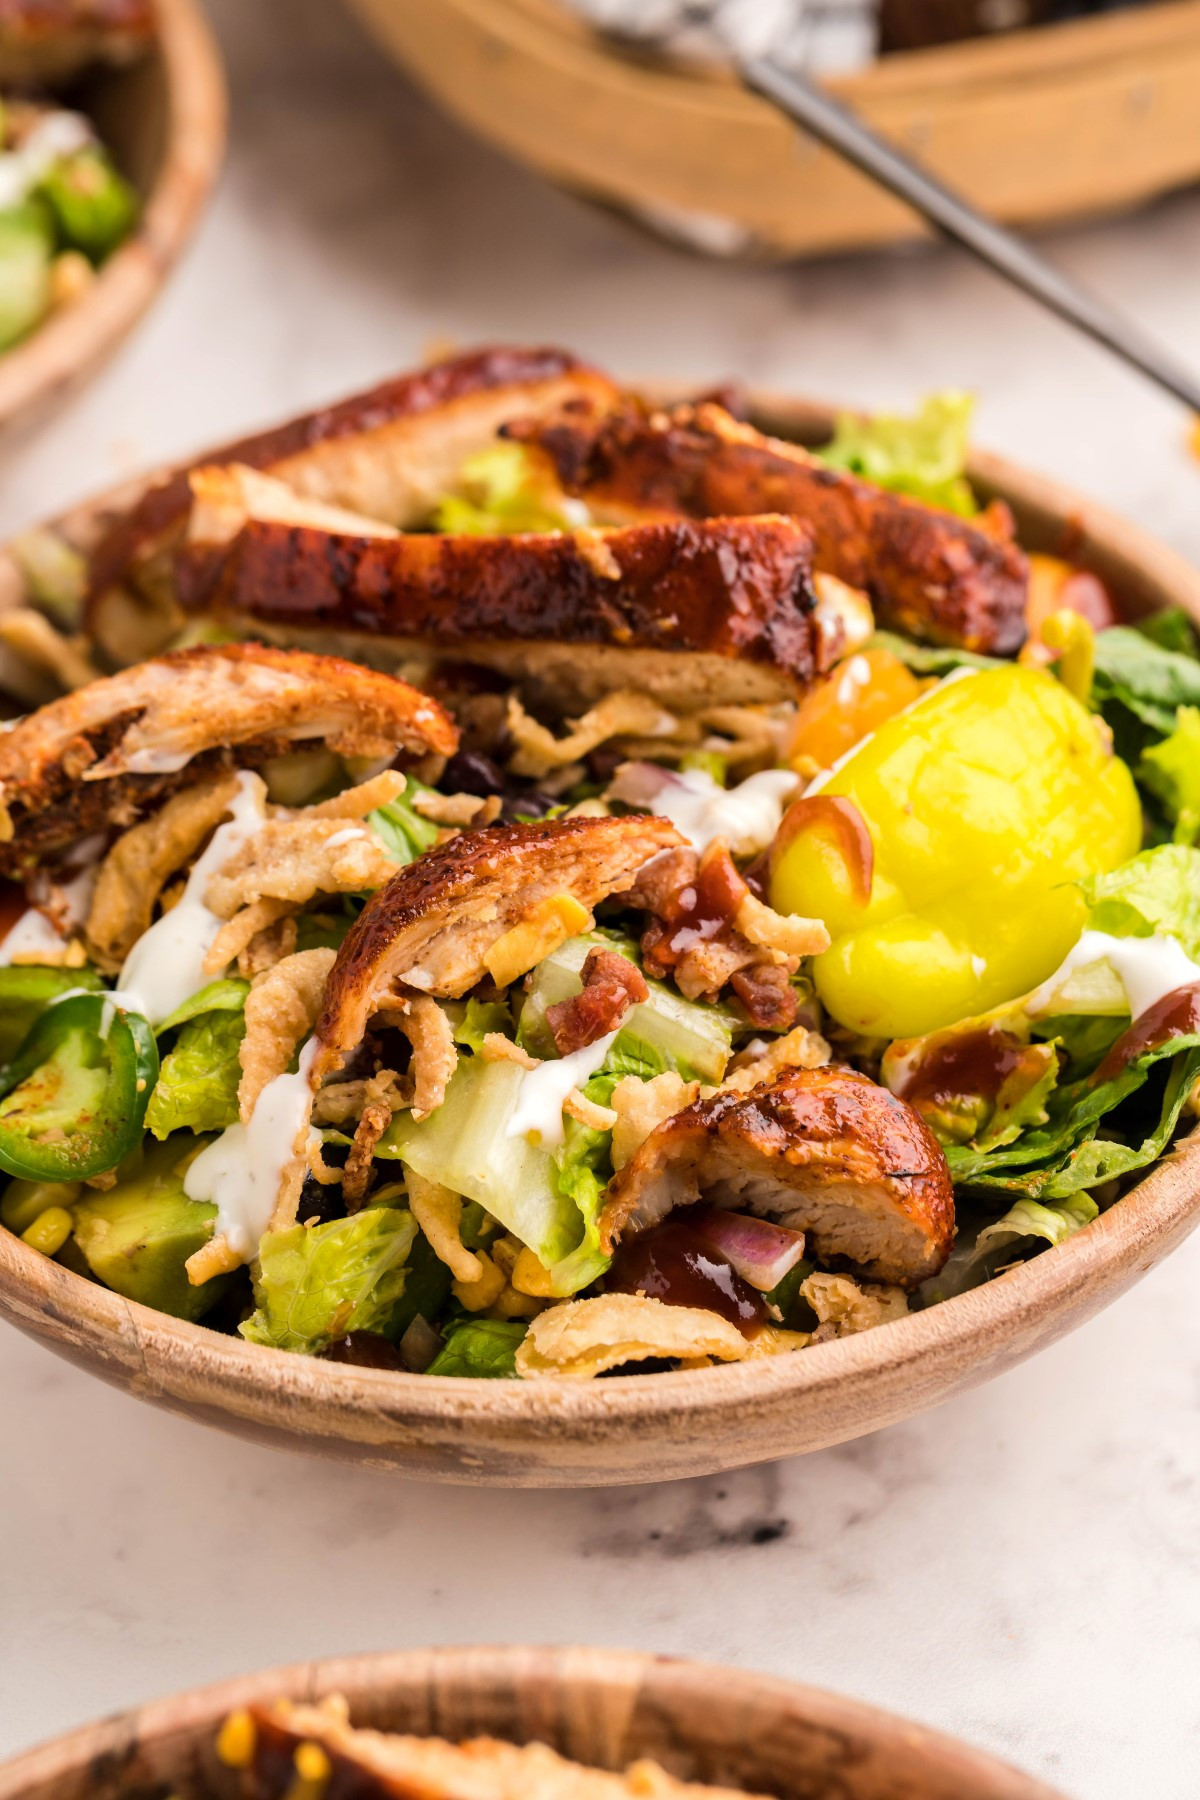 Individual wooden salad bowl filled with grilled chicken salad.